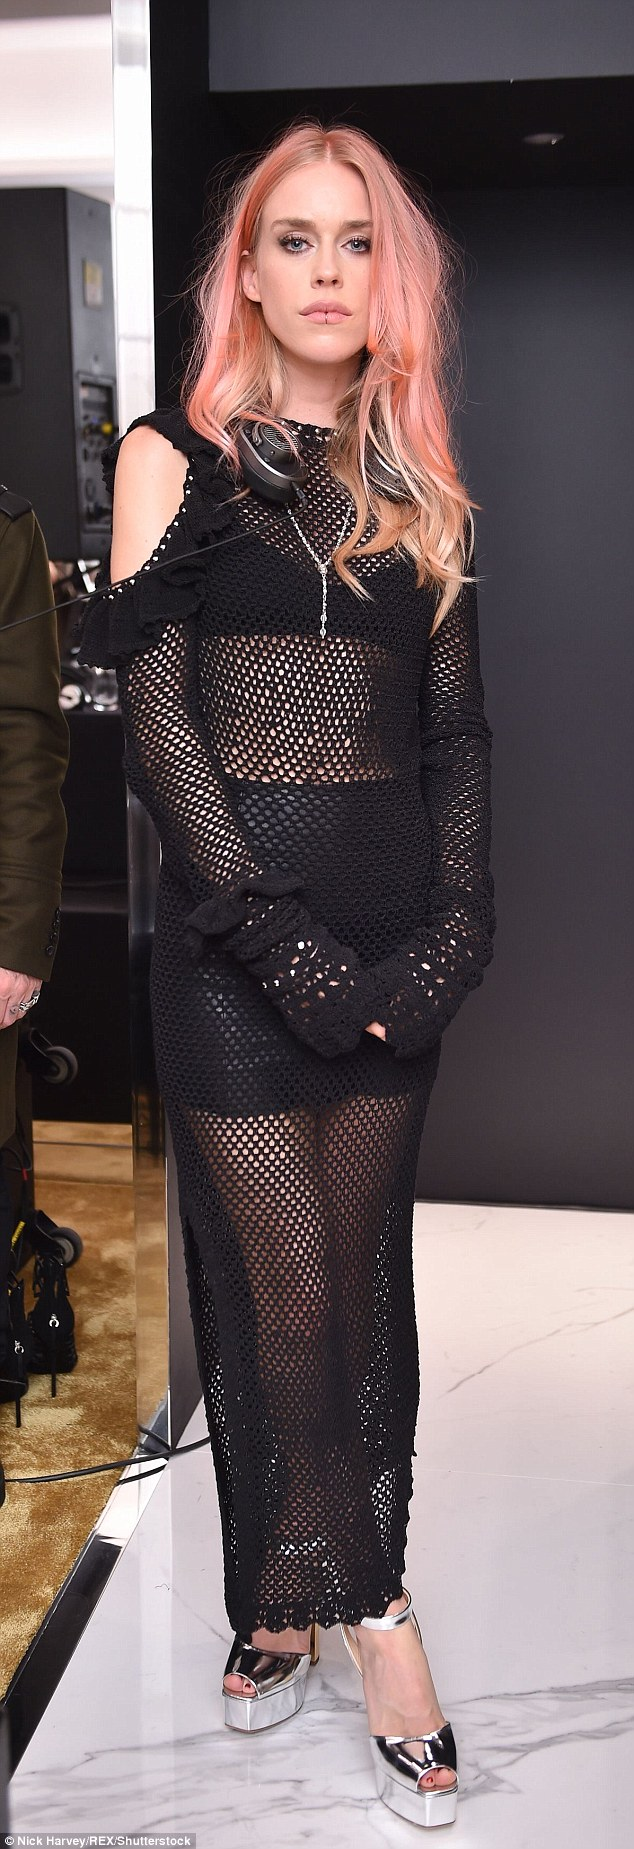 Sheer delight: Mary looked sensational in a mesh dress which showed off her underwear